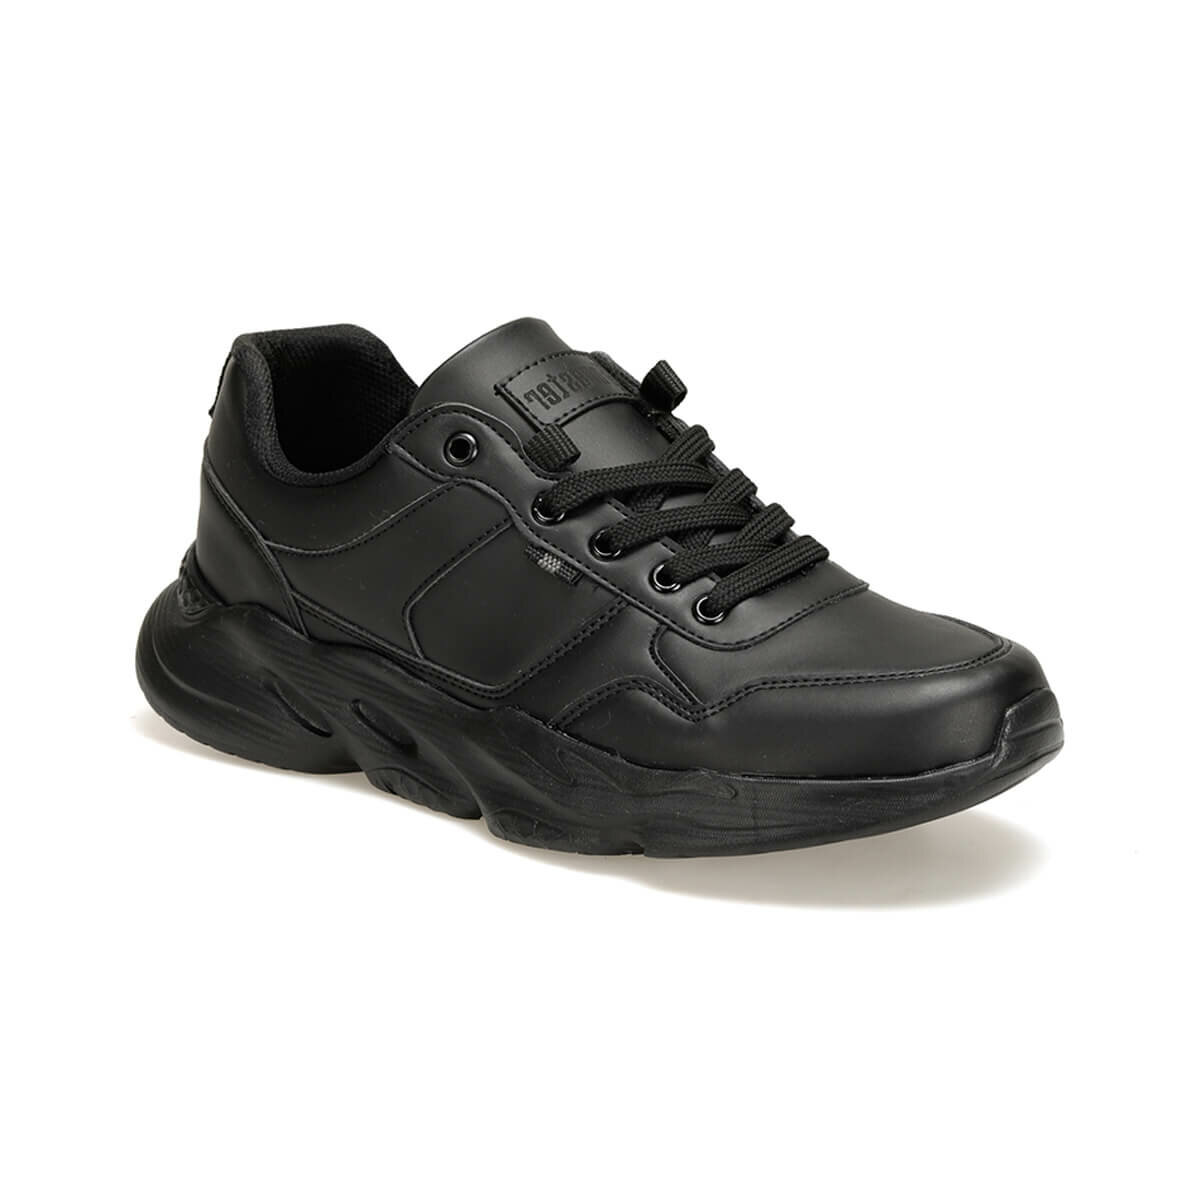 FLO EKL-205 PU Black Male Shoes Forester